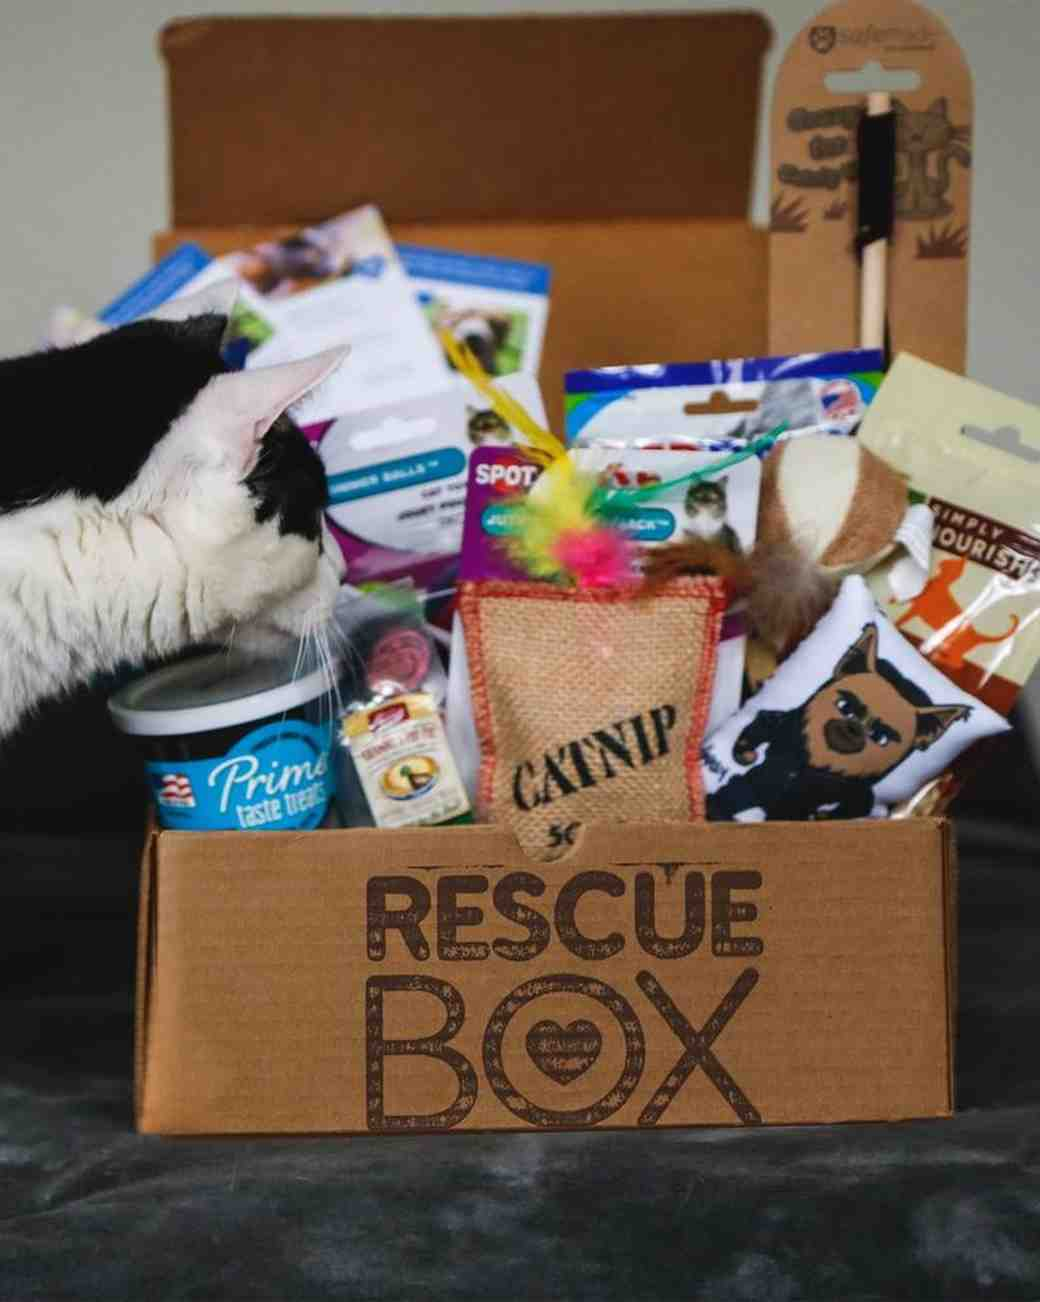 Rescue Box gift for cats